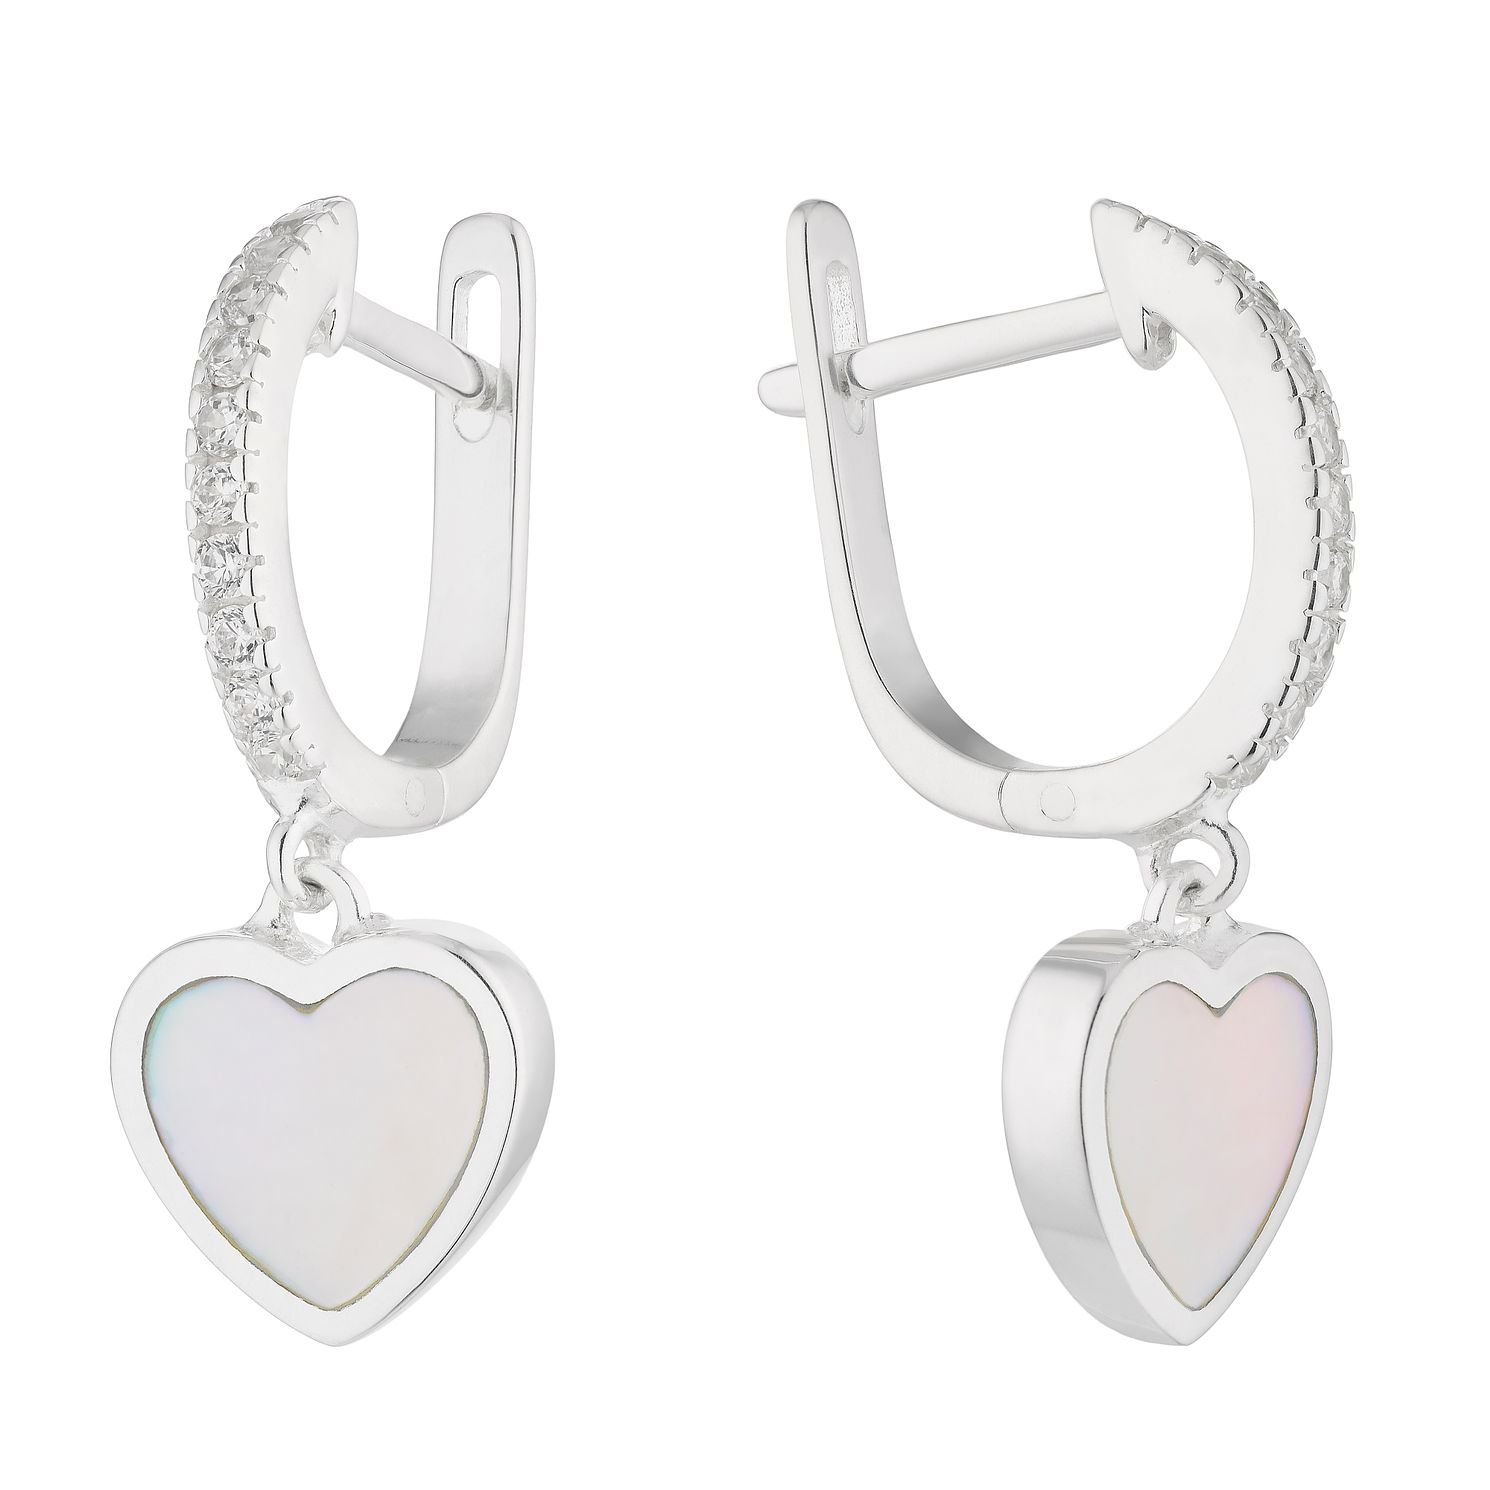 Silver Zirconia & Mother of Pearl Heart Charm Hoop Earrings - Product number 1160214